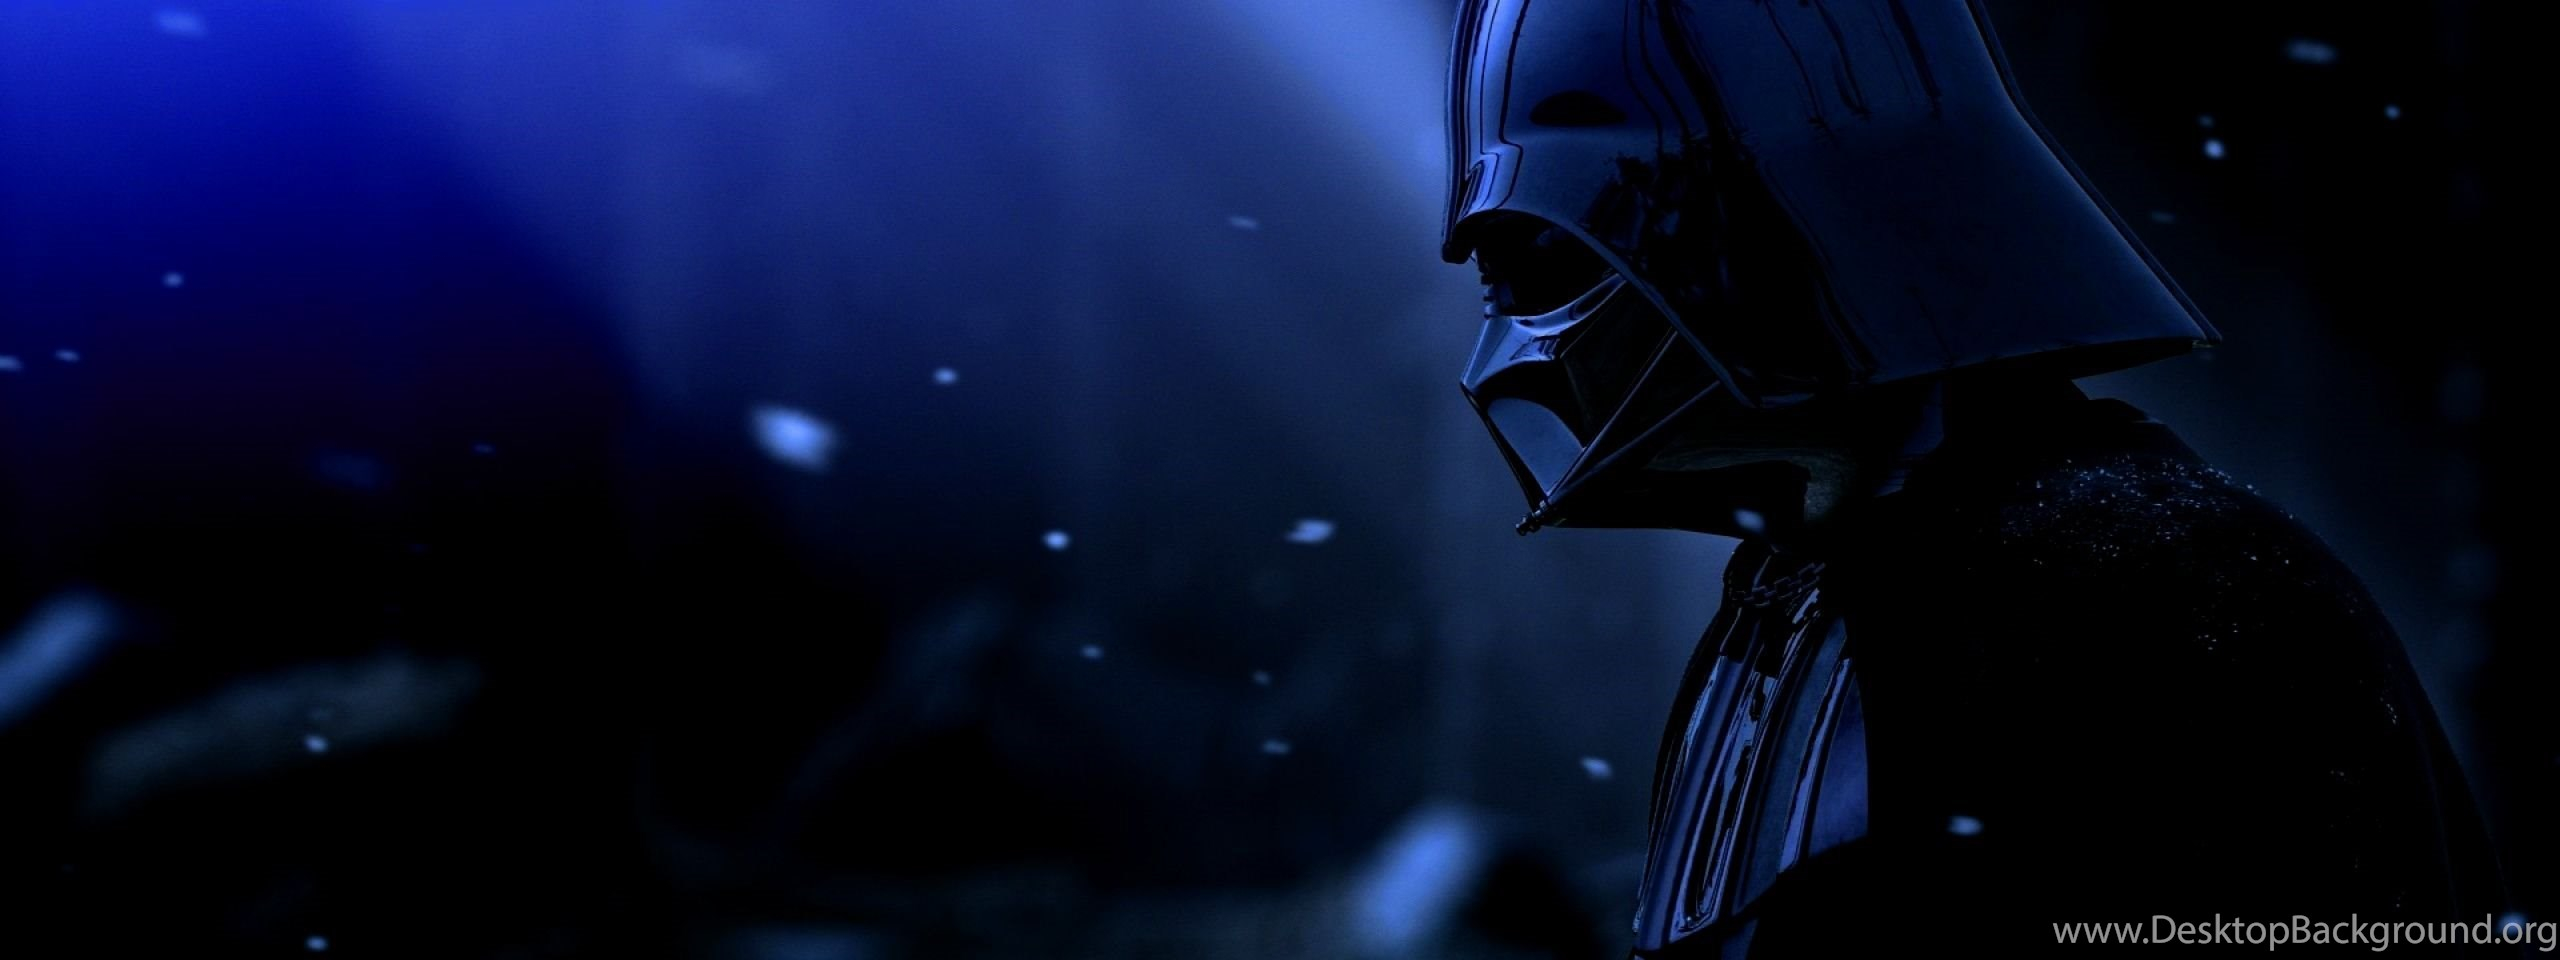 Star Wars Dual Monitor Wallpapers 2560 1024 High Definition Desktop Background